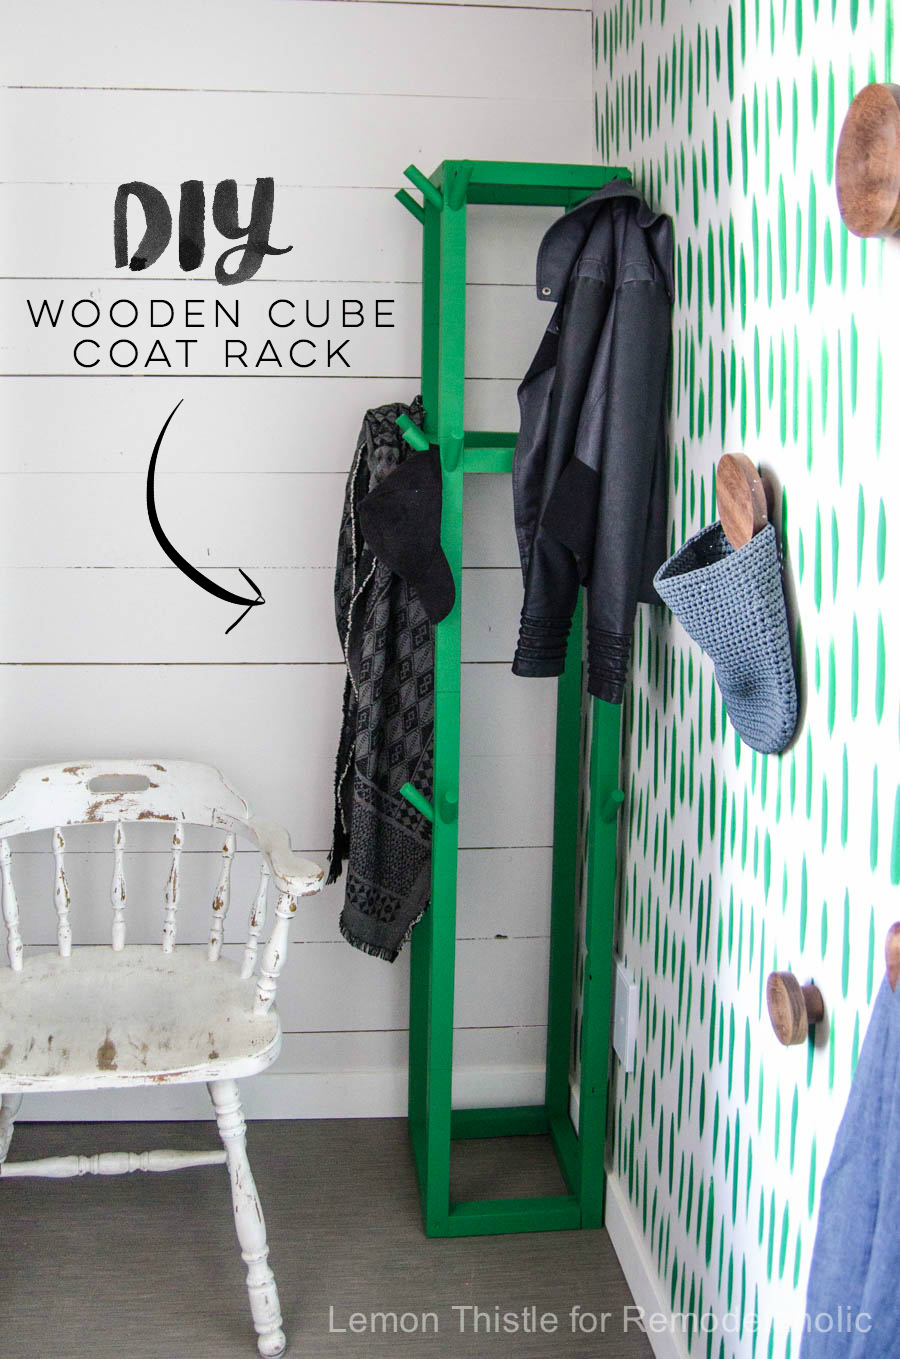 I love this DIY wooden coat rack- the cube shape and green paint is so fun! Plenty of room for guest's coats while entertaining, and the lower pegs make it kid-friendly, too. Build it for just $10 and some paint!